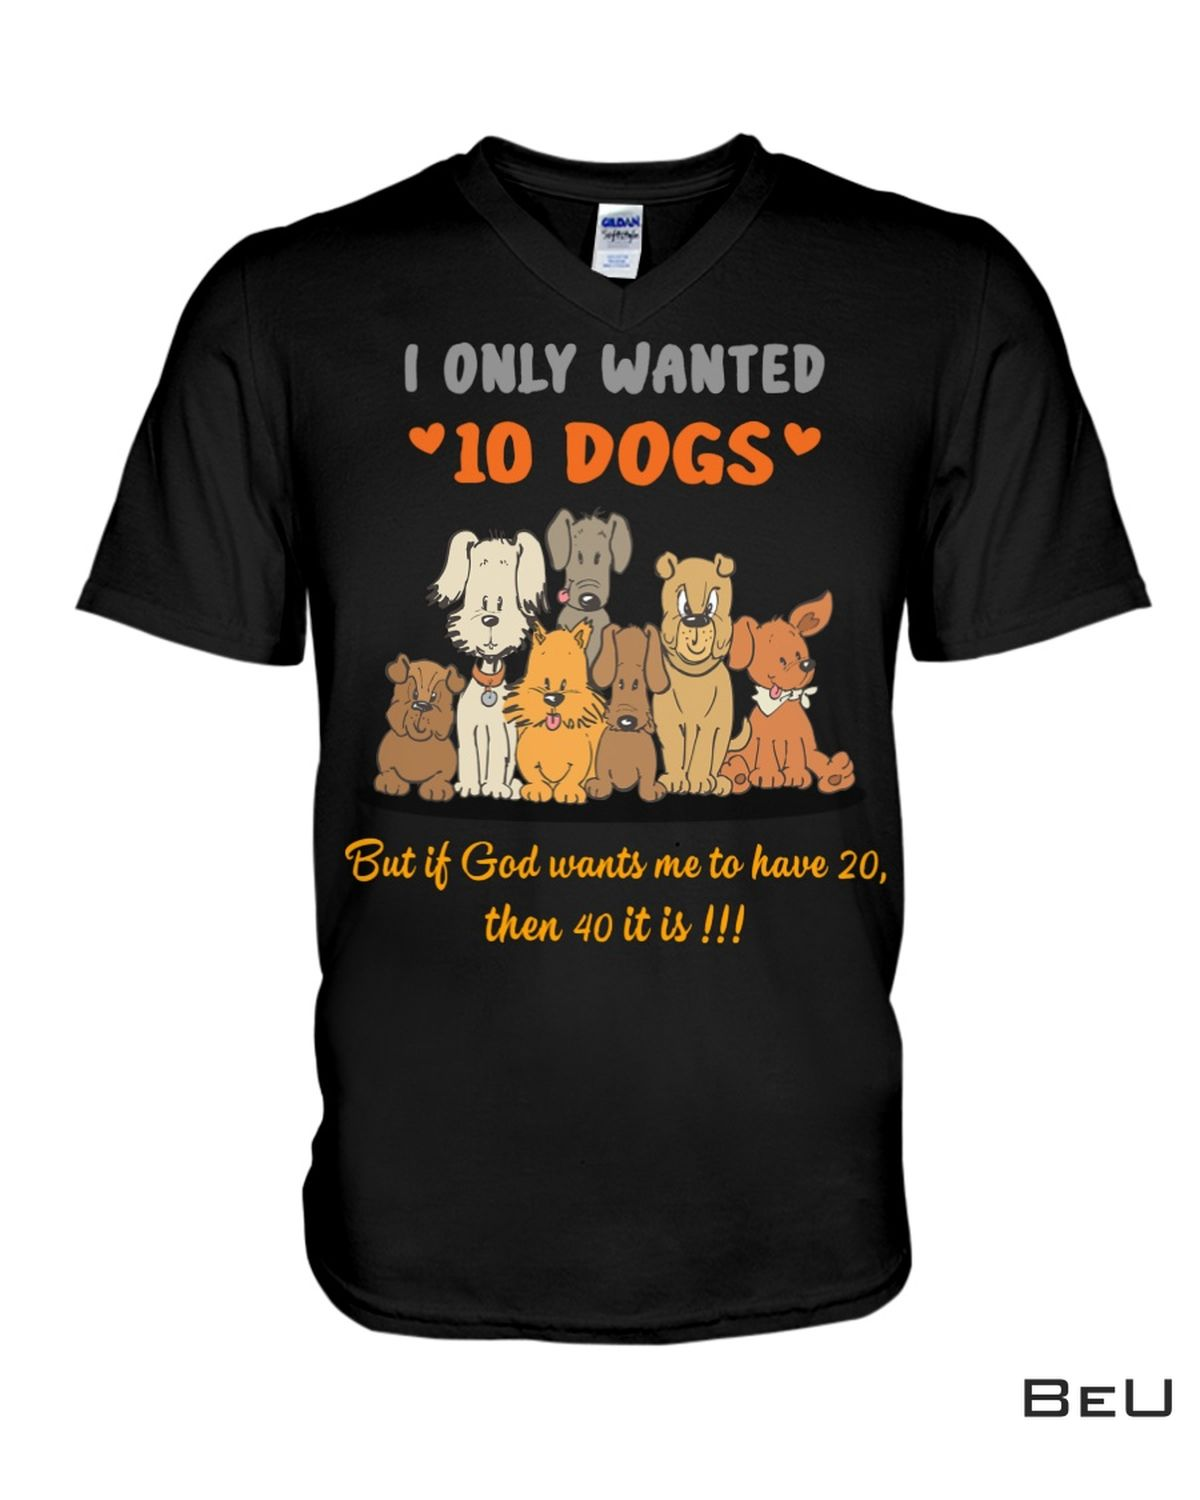 Best Gift I Only Wanted 10 Dogs But If God Wants Me To Have 20 Shirt, hoodie, tank top